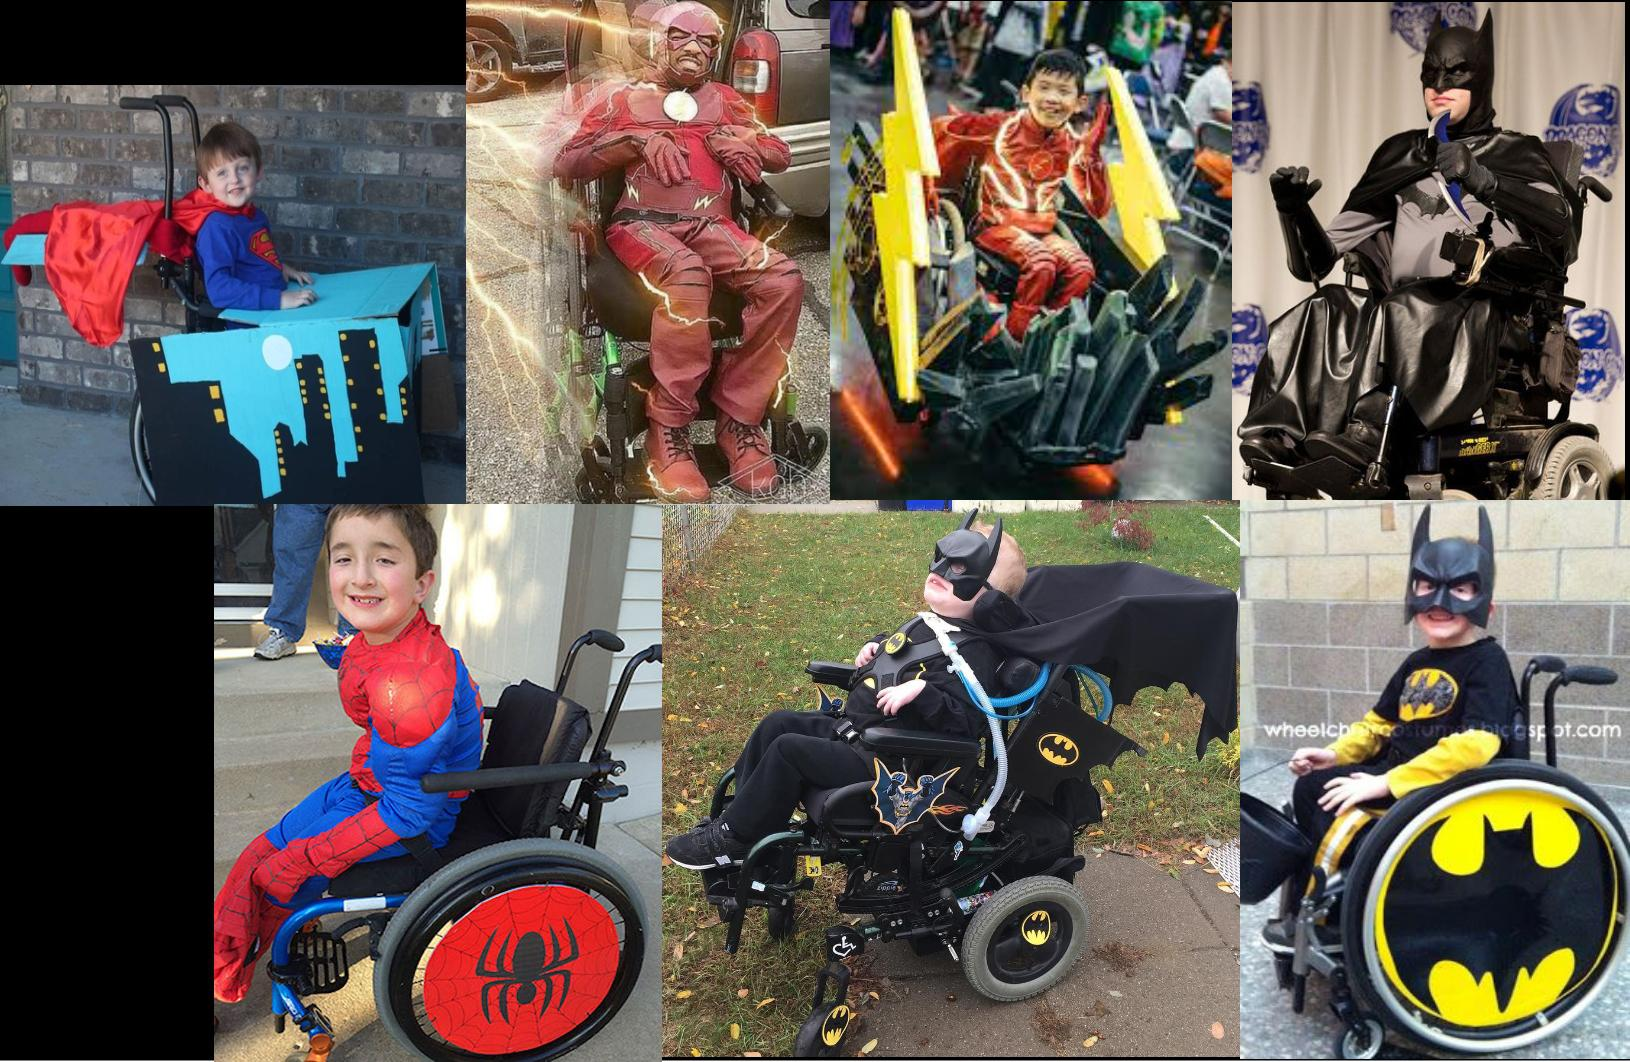 [IMAGE] A wonderful collection of people not letting their wheelchair-bound bodies stopping them from being their favorite superheroes! This just lifts my spirits up and motivates me so much!